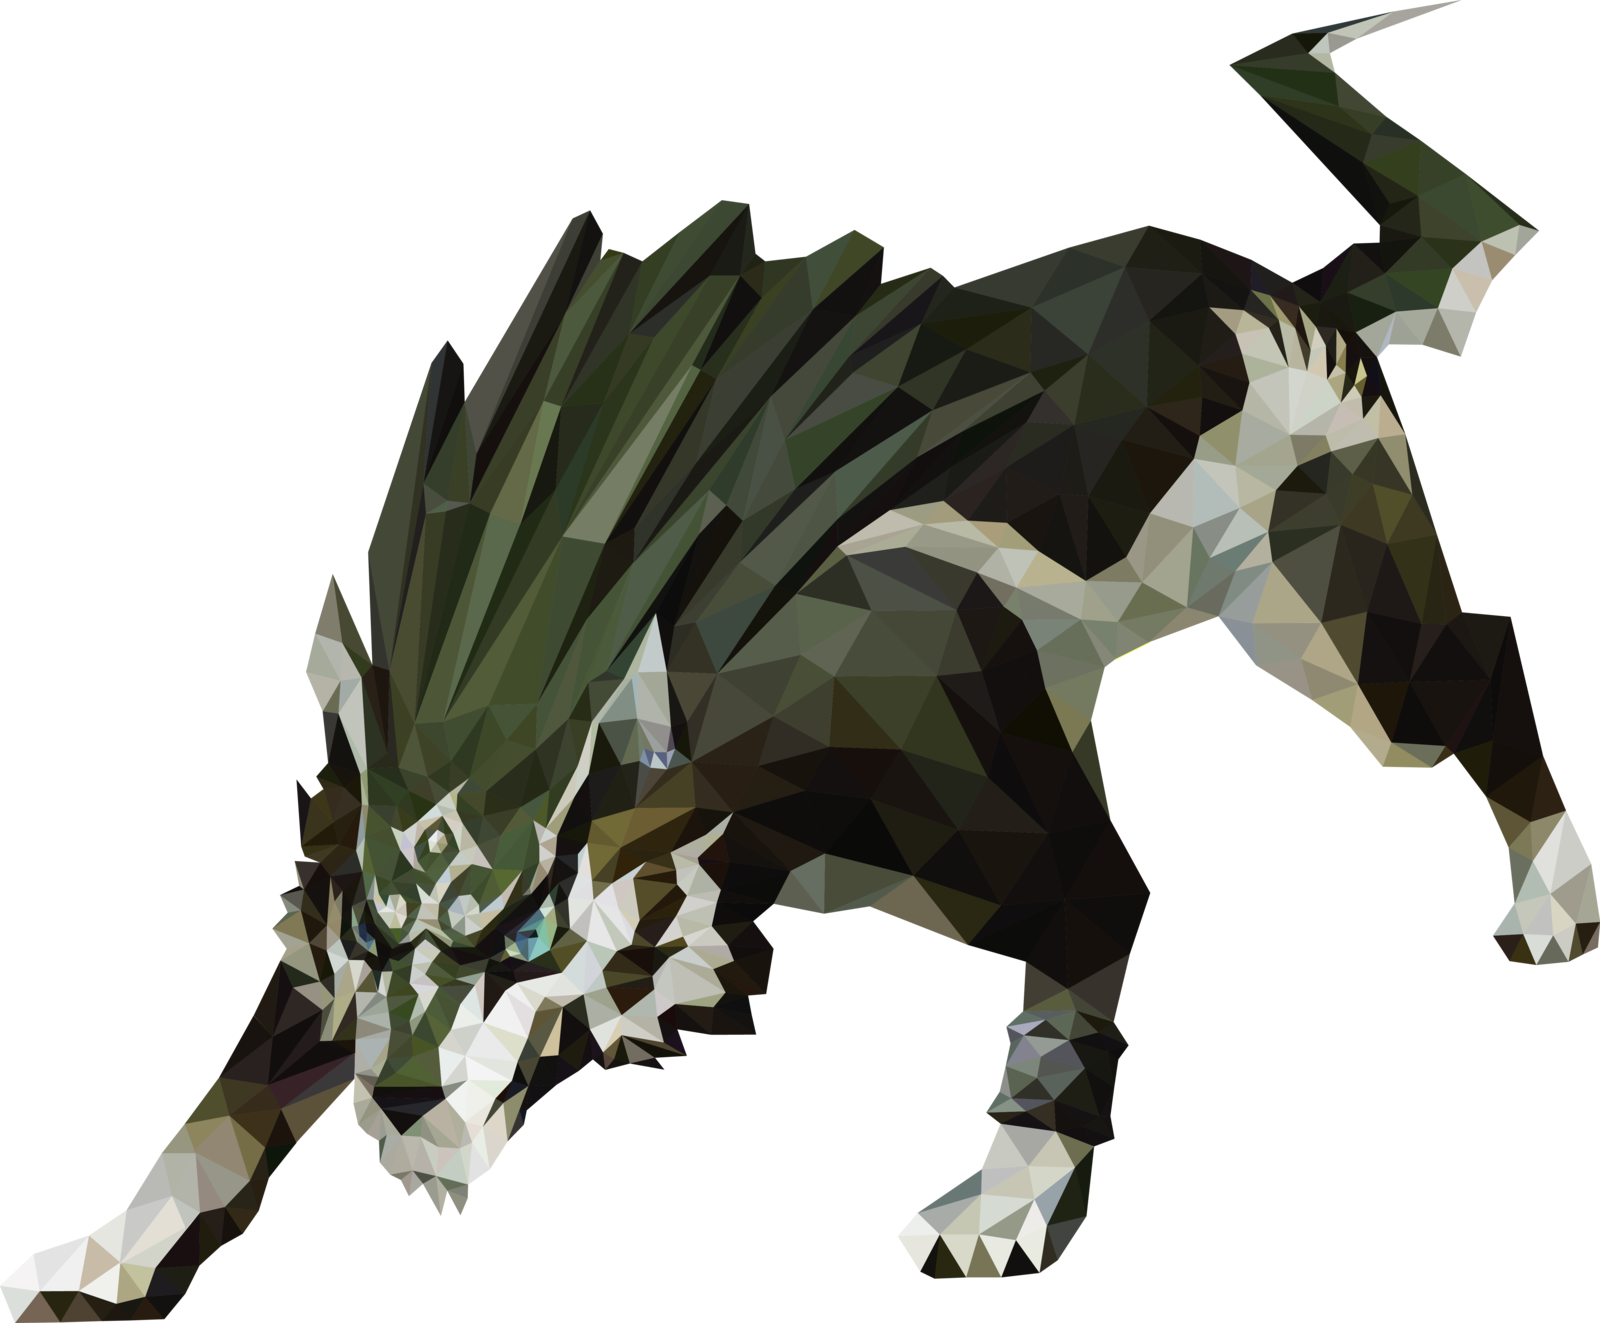 Transparent link wolf. Image polygon art by